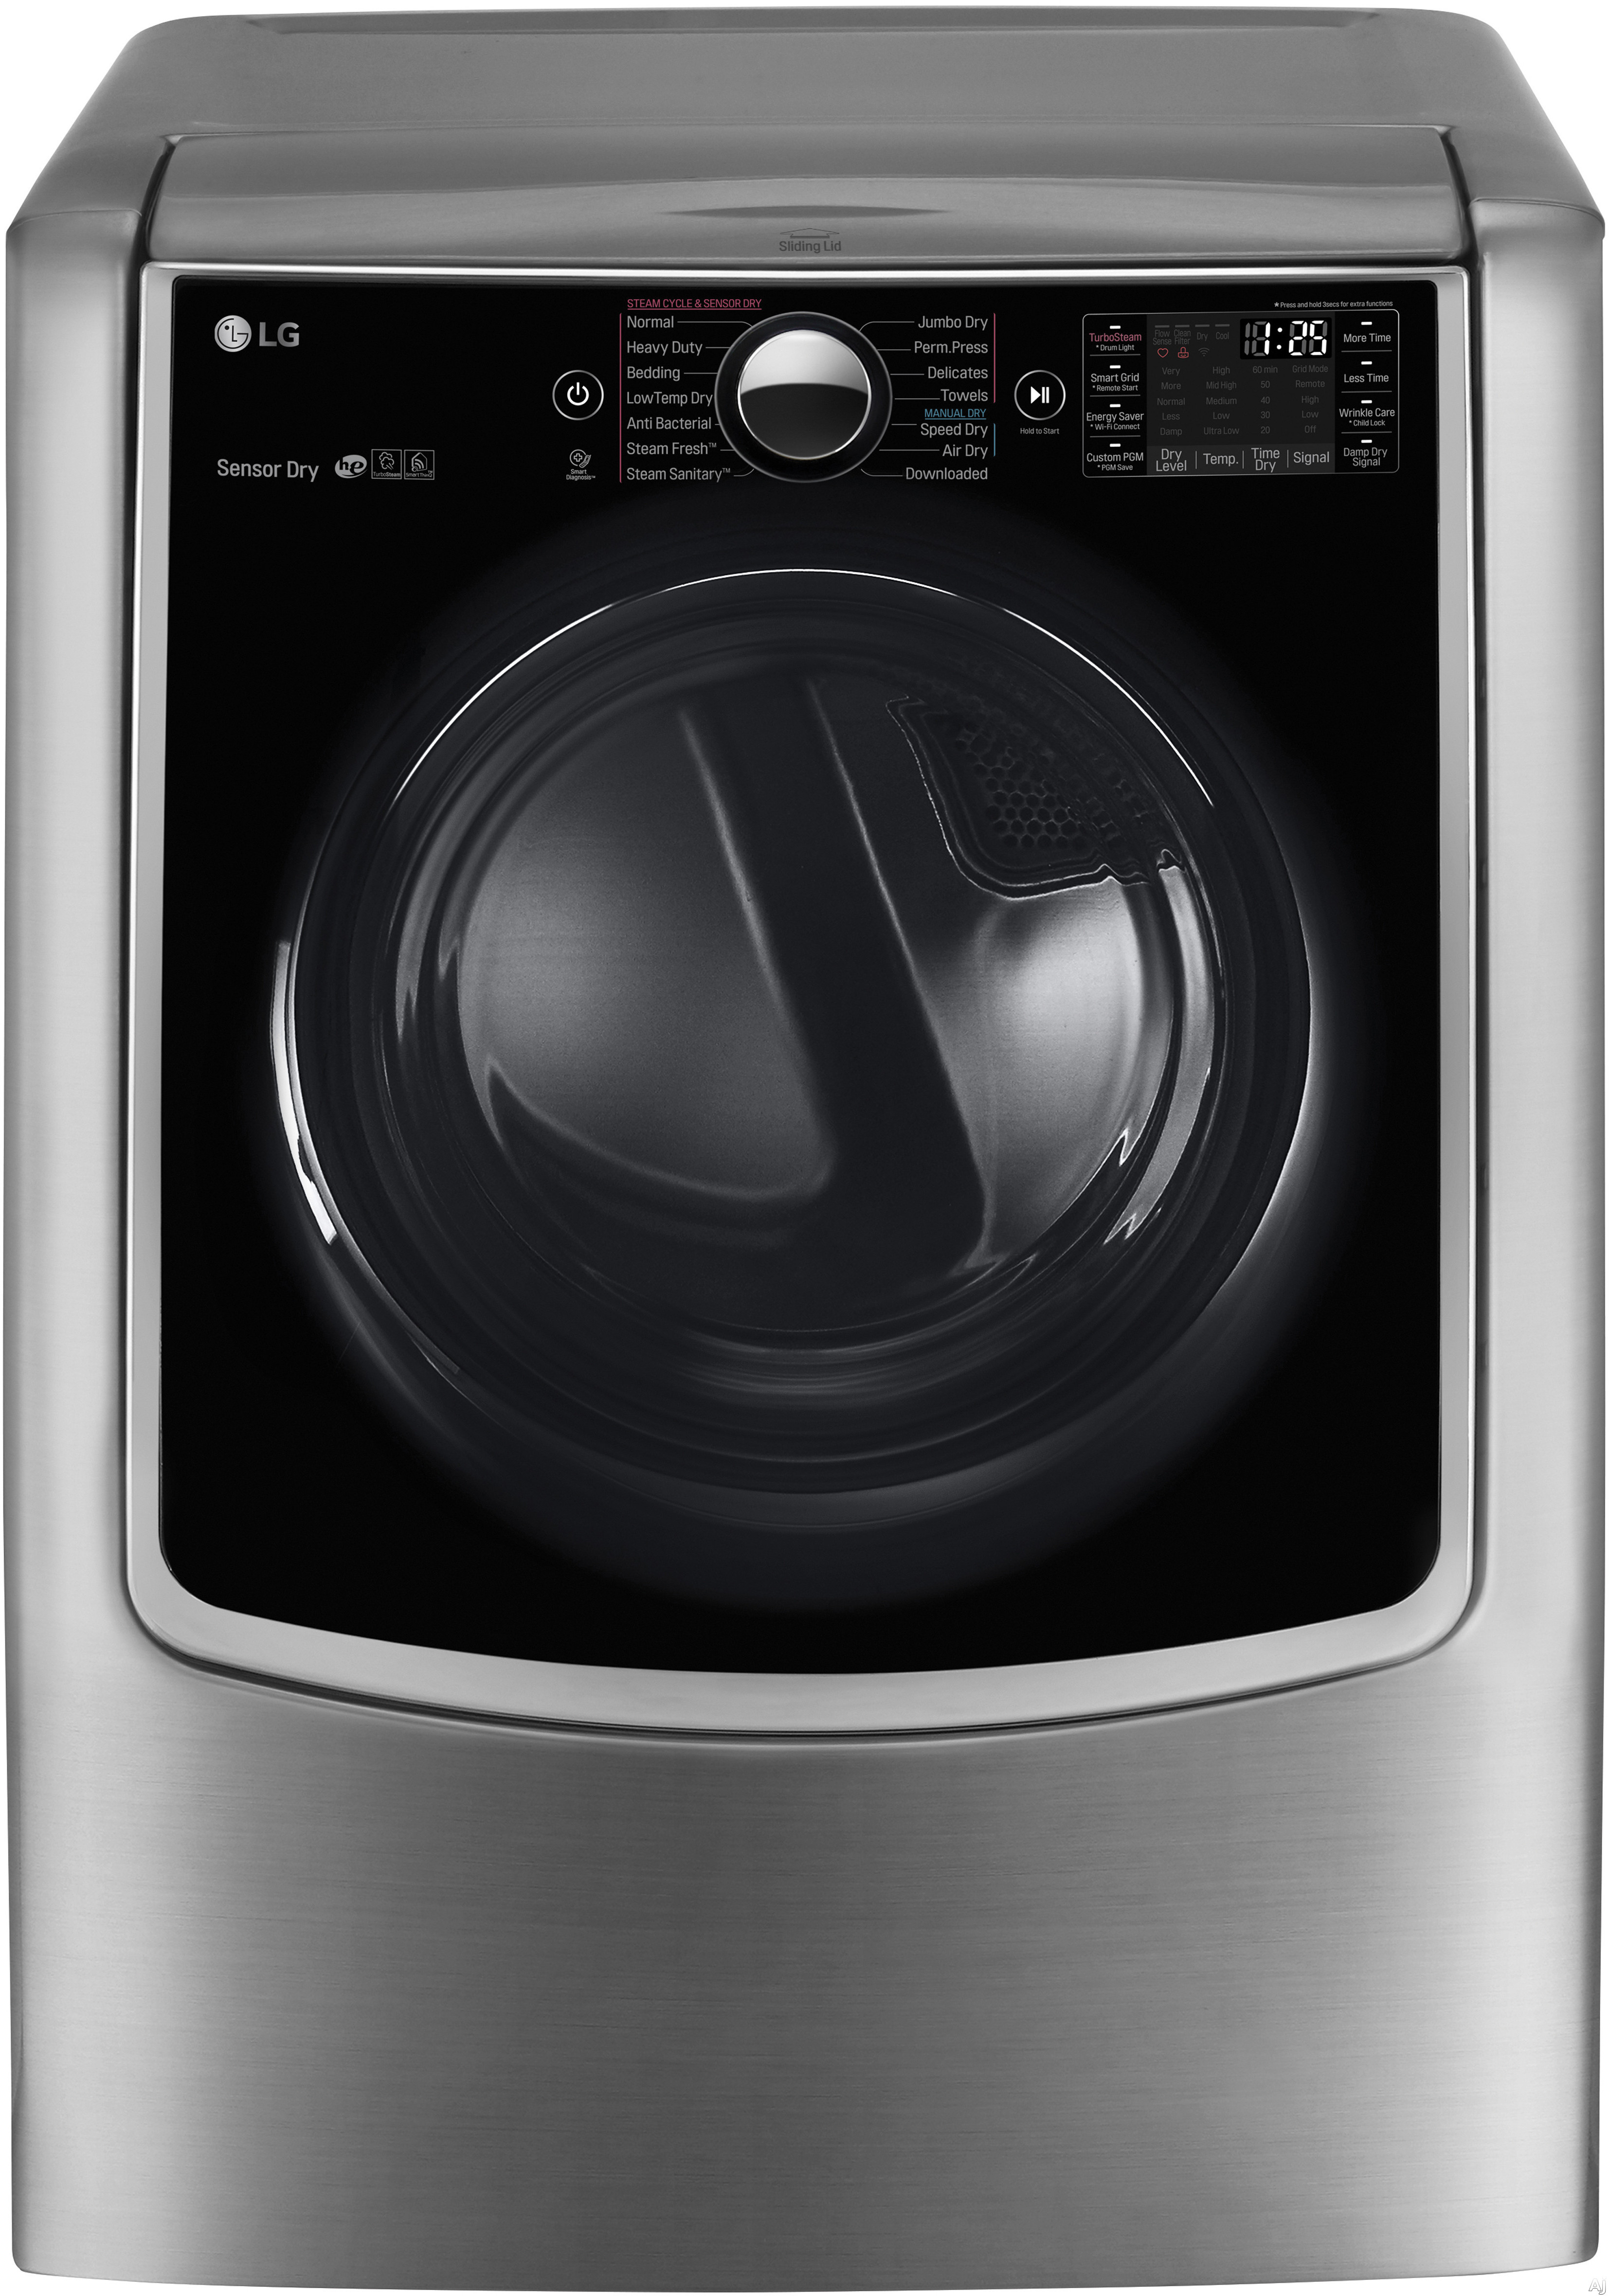 LG TurboSteam Series DLEX9000V 29 Inch 9.0 cu. ft. Electric Dryer with Sensor Dry Smart ThinQ Wi Fi Wrinkle Care 14 Dry Cycles 5 Temperature Selections and ENERGY STAR Qualification Graphite Steel